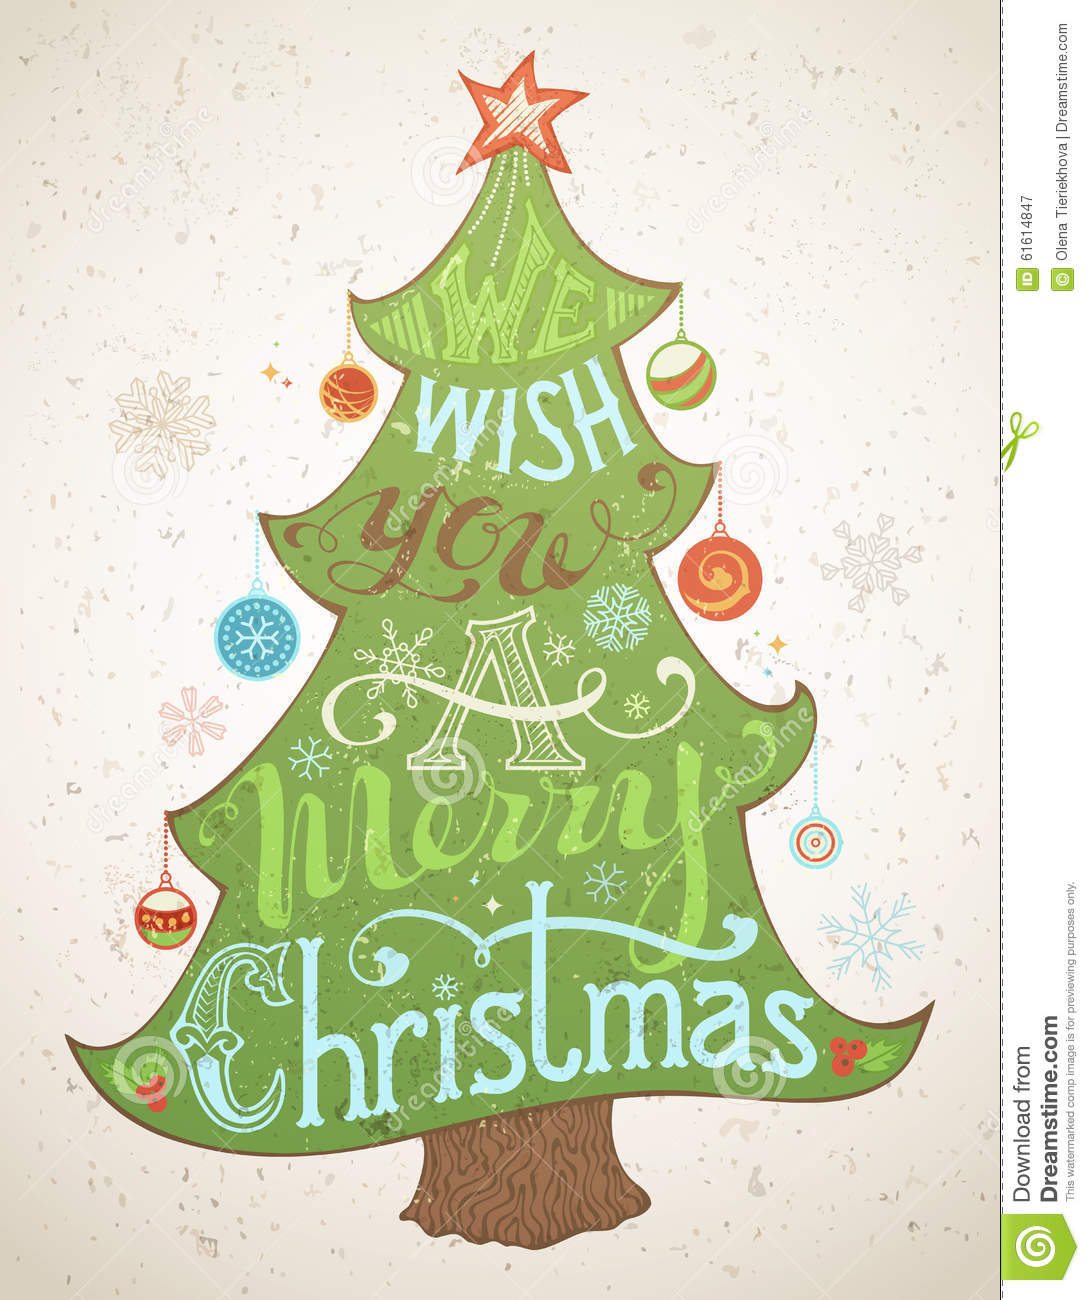 We Wish You A Merry Christmas. Stock Vector - Illustration of ilex ...